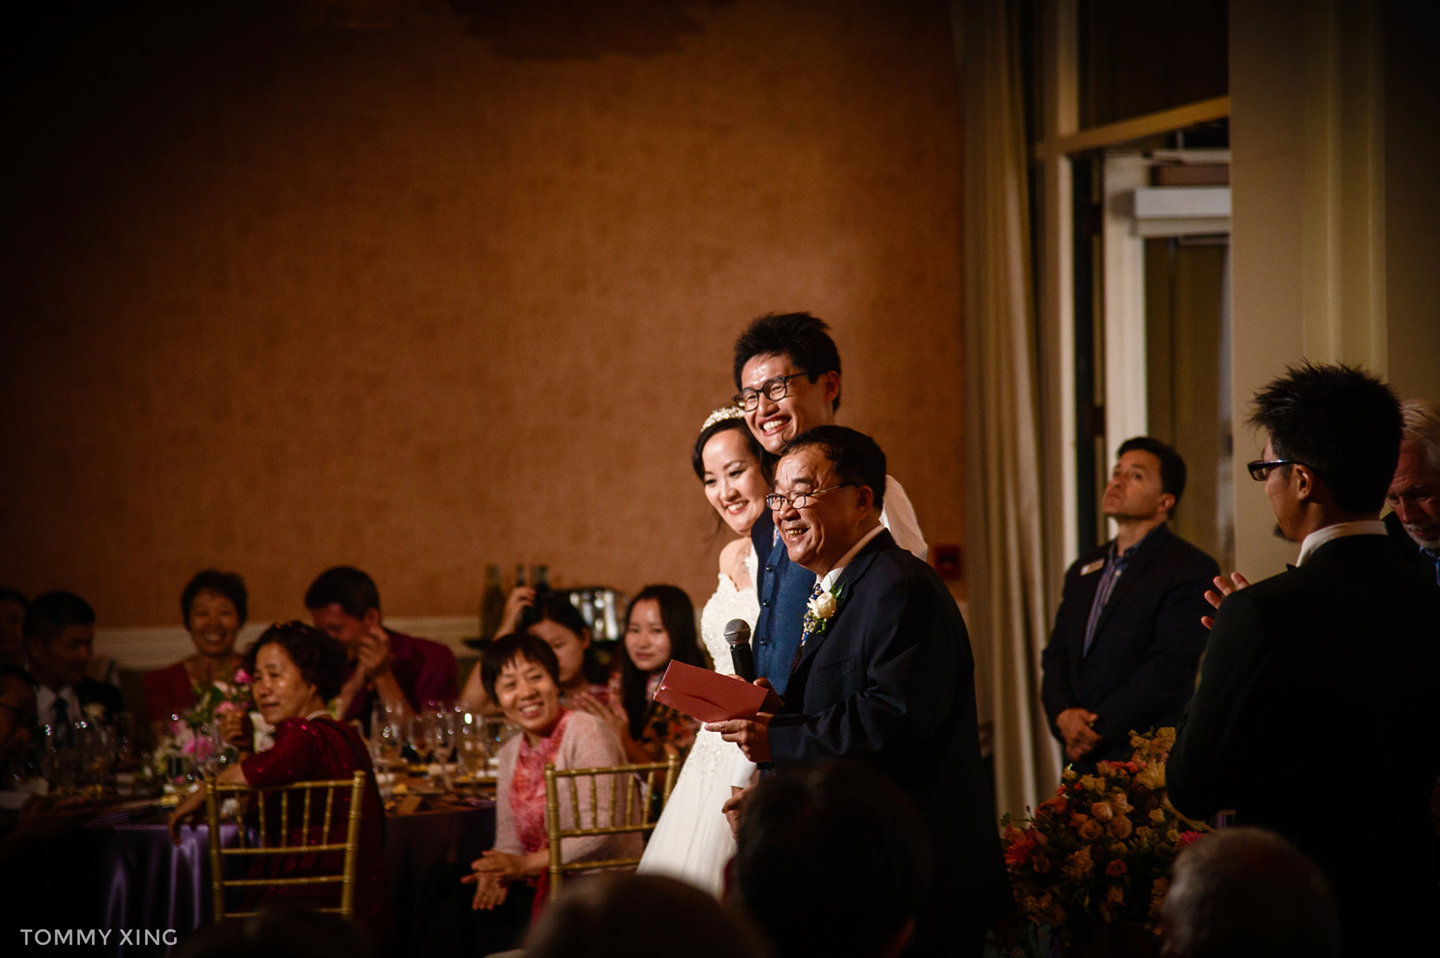 Paradise Point Resort Wedding Xiaolu & Bin San Diego 圣地亚哥婚礼摄影跟拍 Tommy Xing Photography 洛杉矶婚礼婚纱照摄影师 253.jpg